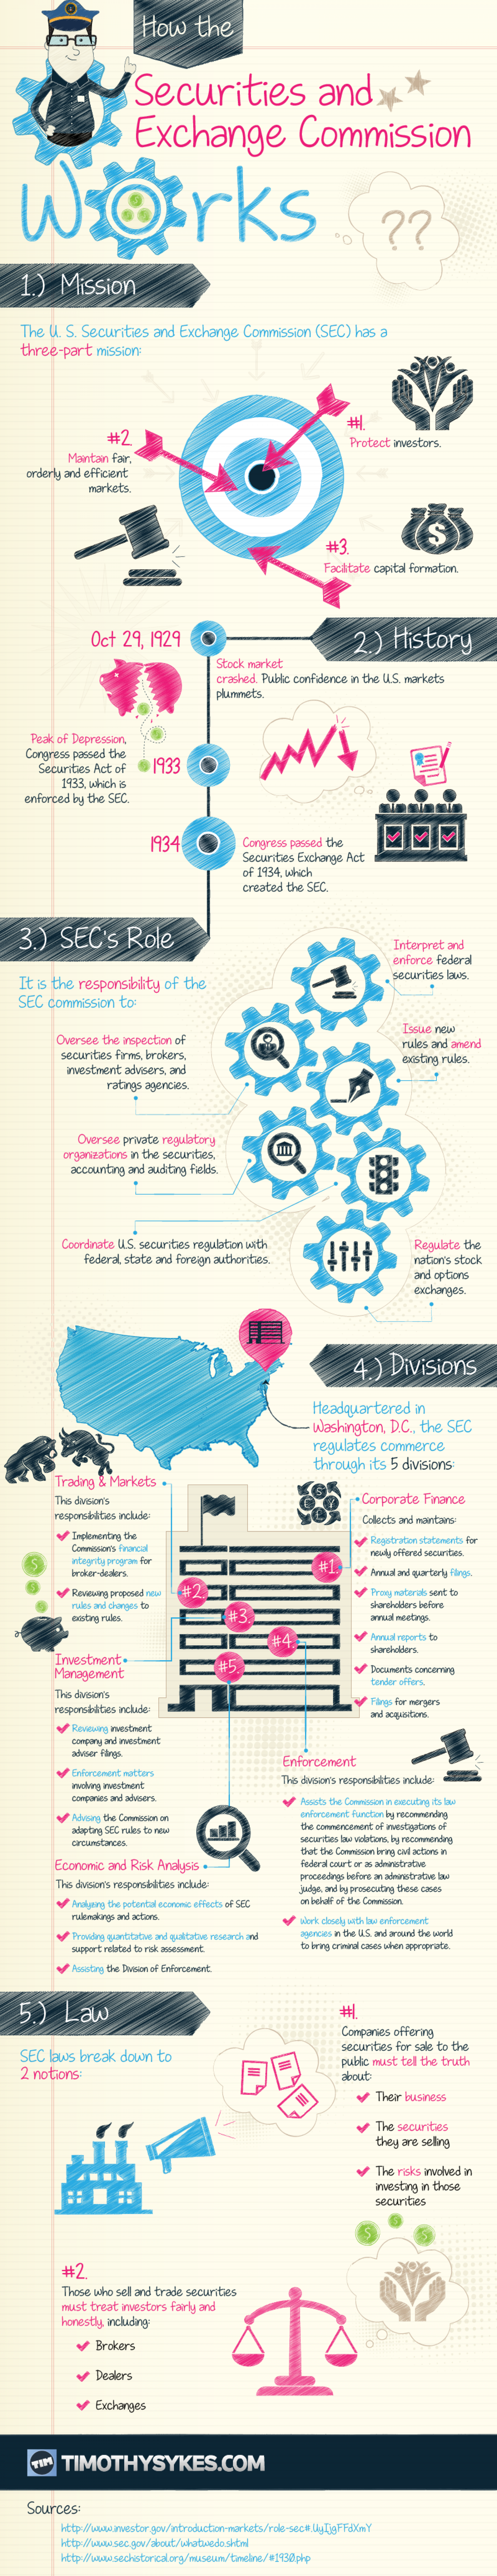 How The Securities And Exchange Commission Works? Infographic